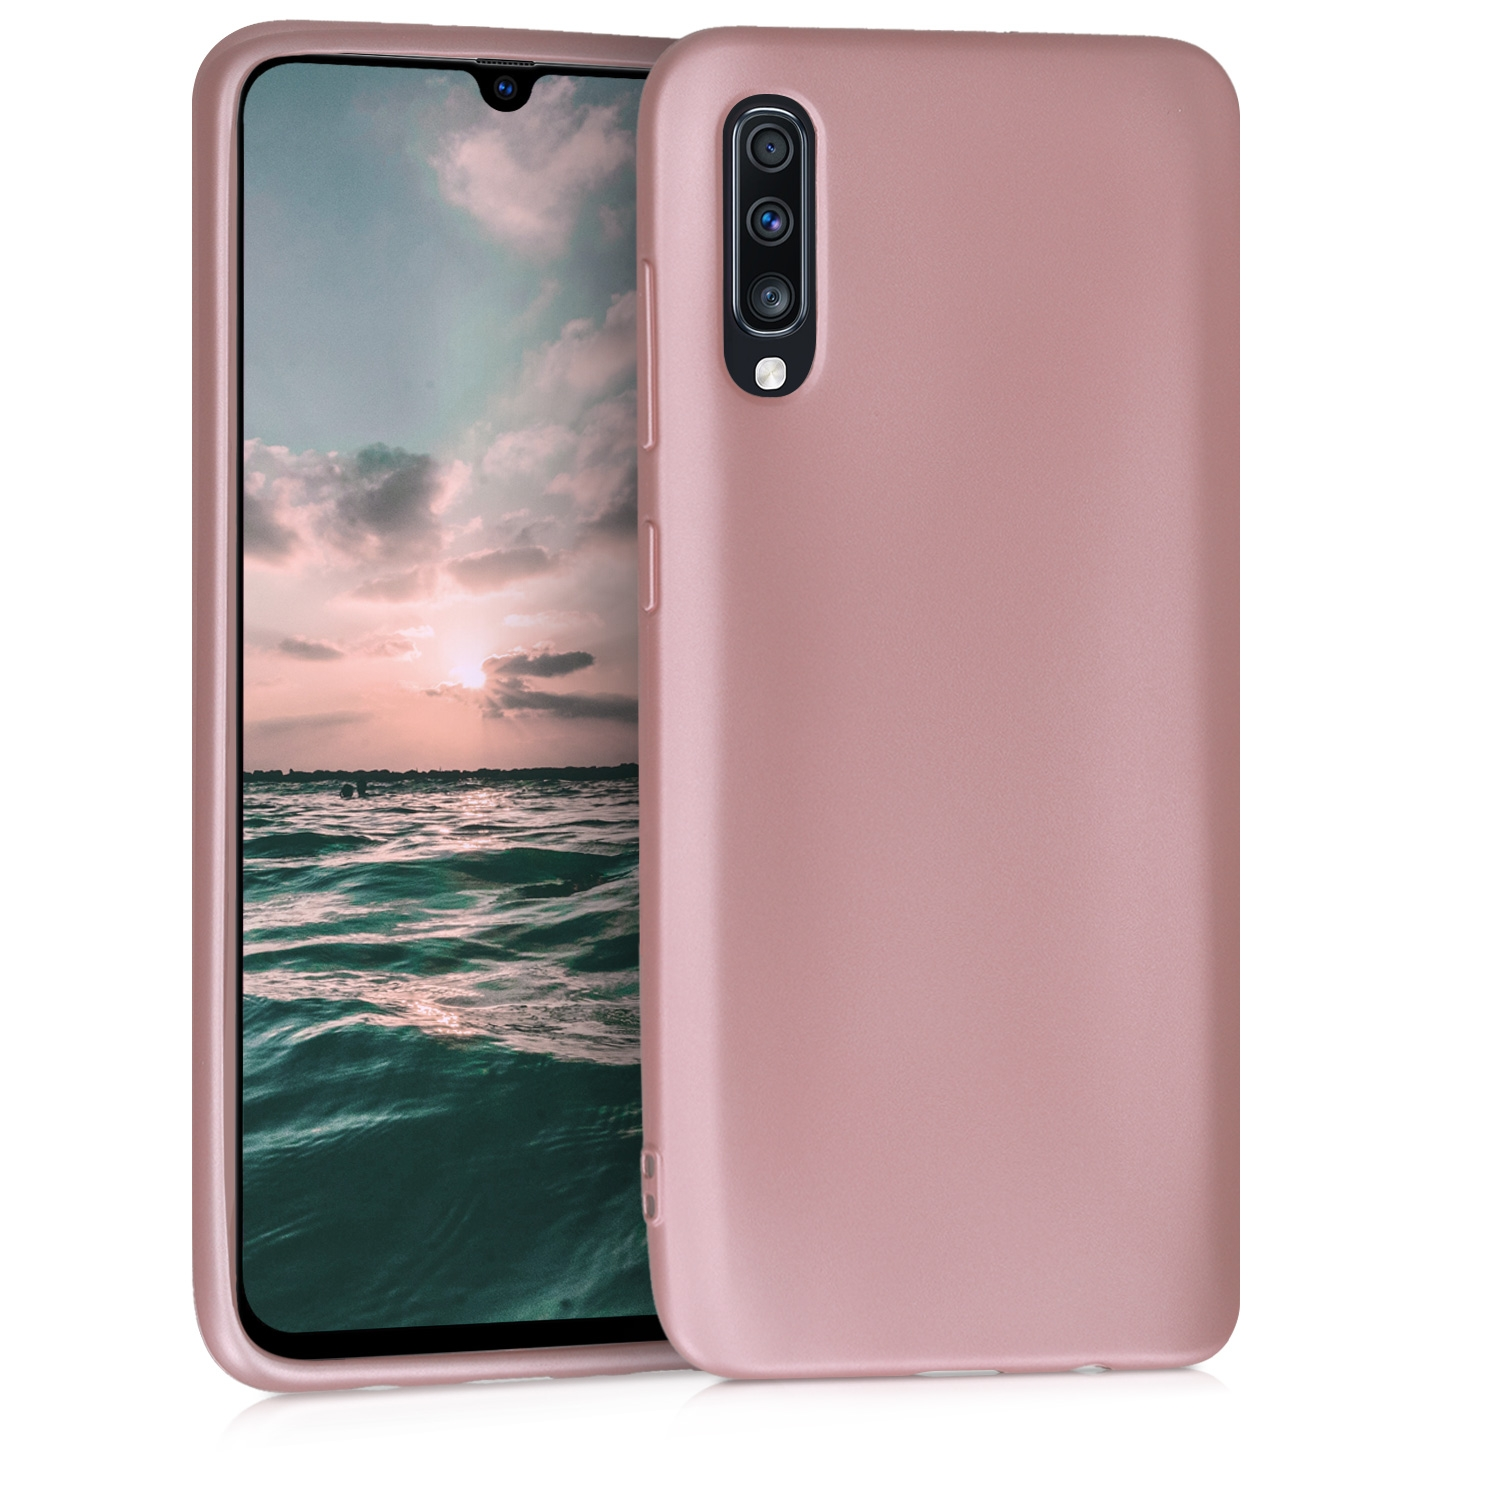 KW Θήκη Σιλικόνης Samsung Galaxy A70 - Metallic Rose Gold - (48430.31)